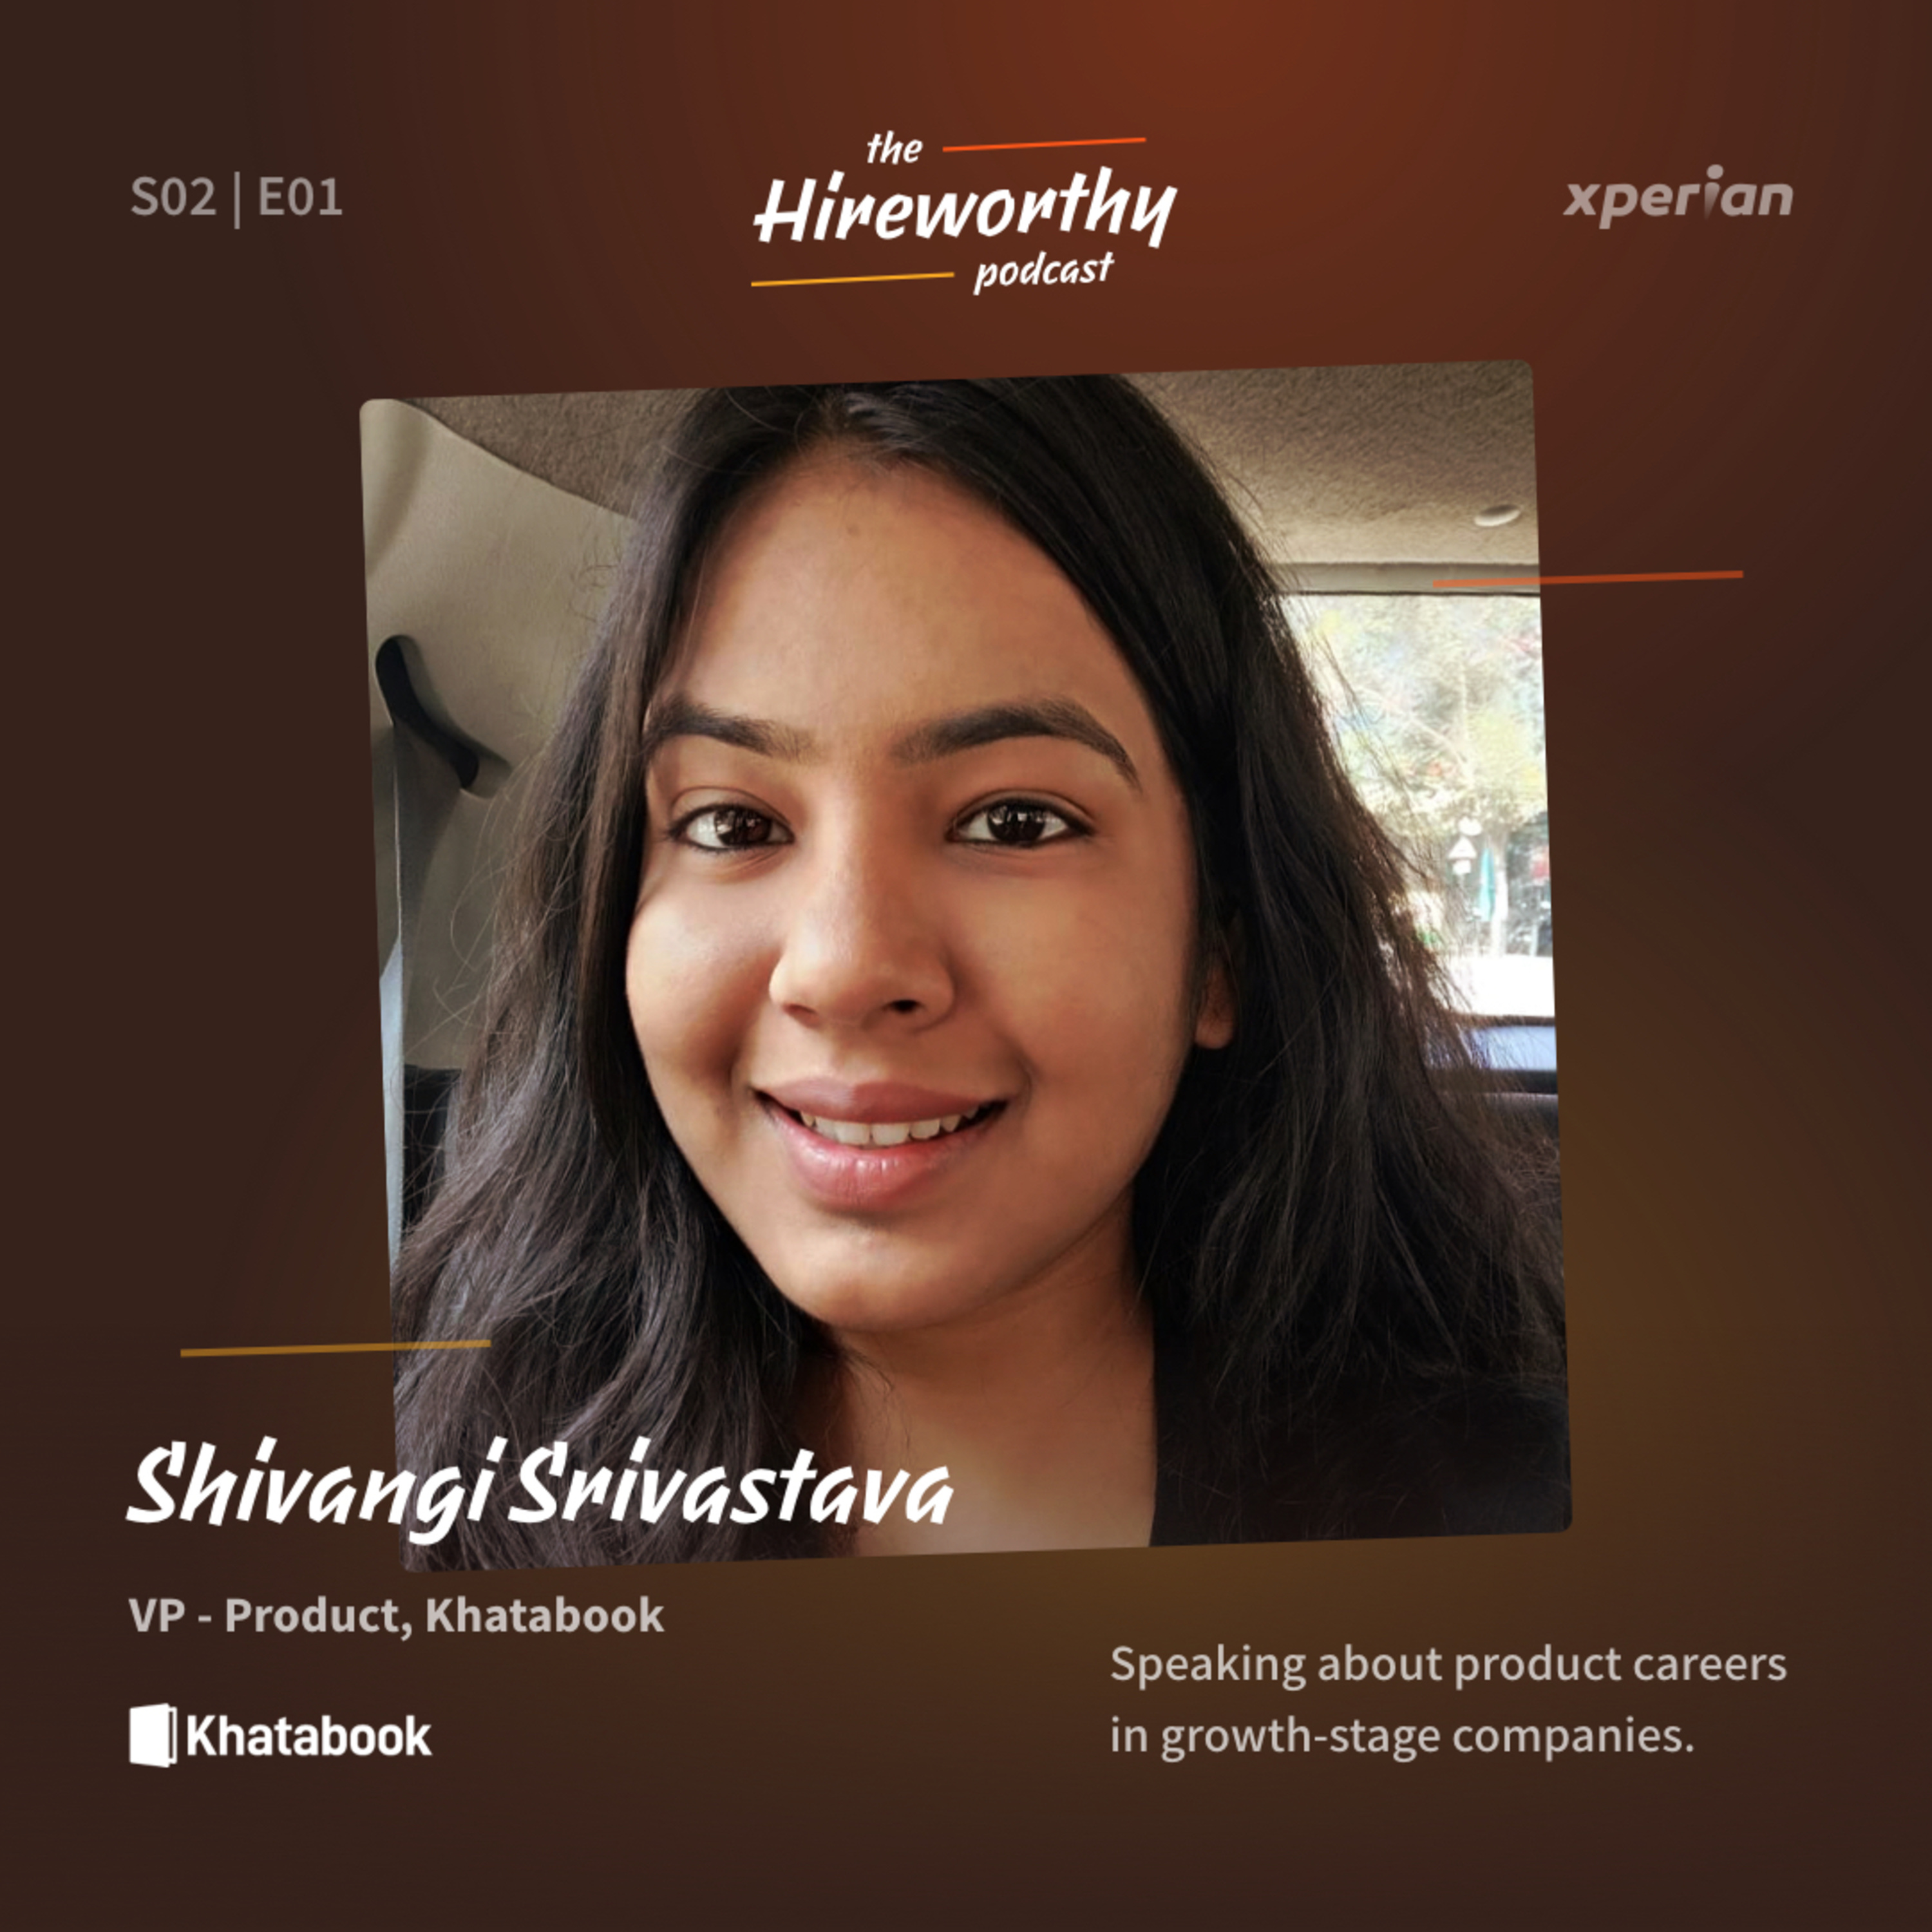 11 | Learning by Doing & Leading Products with Shivangi Srivastava